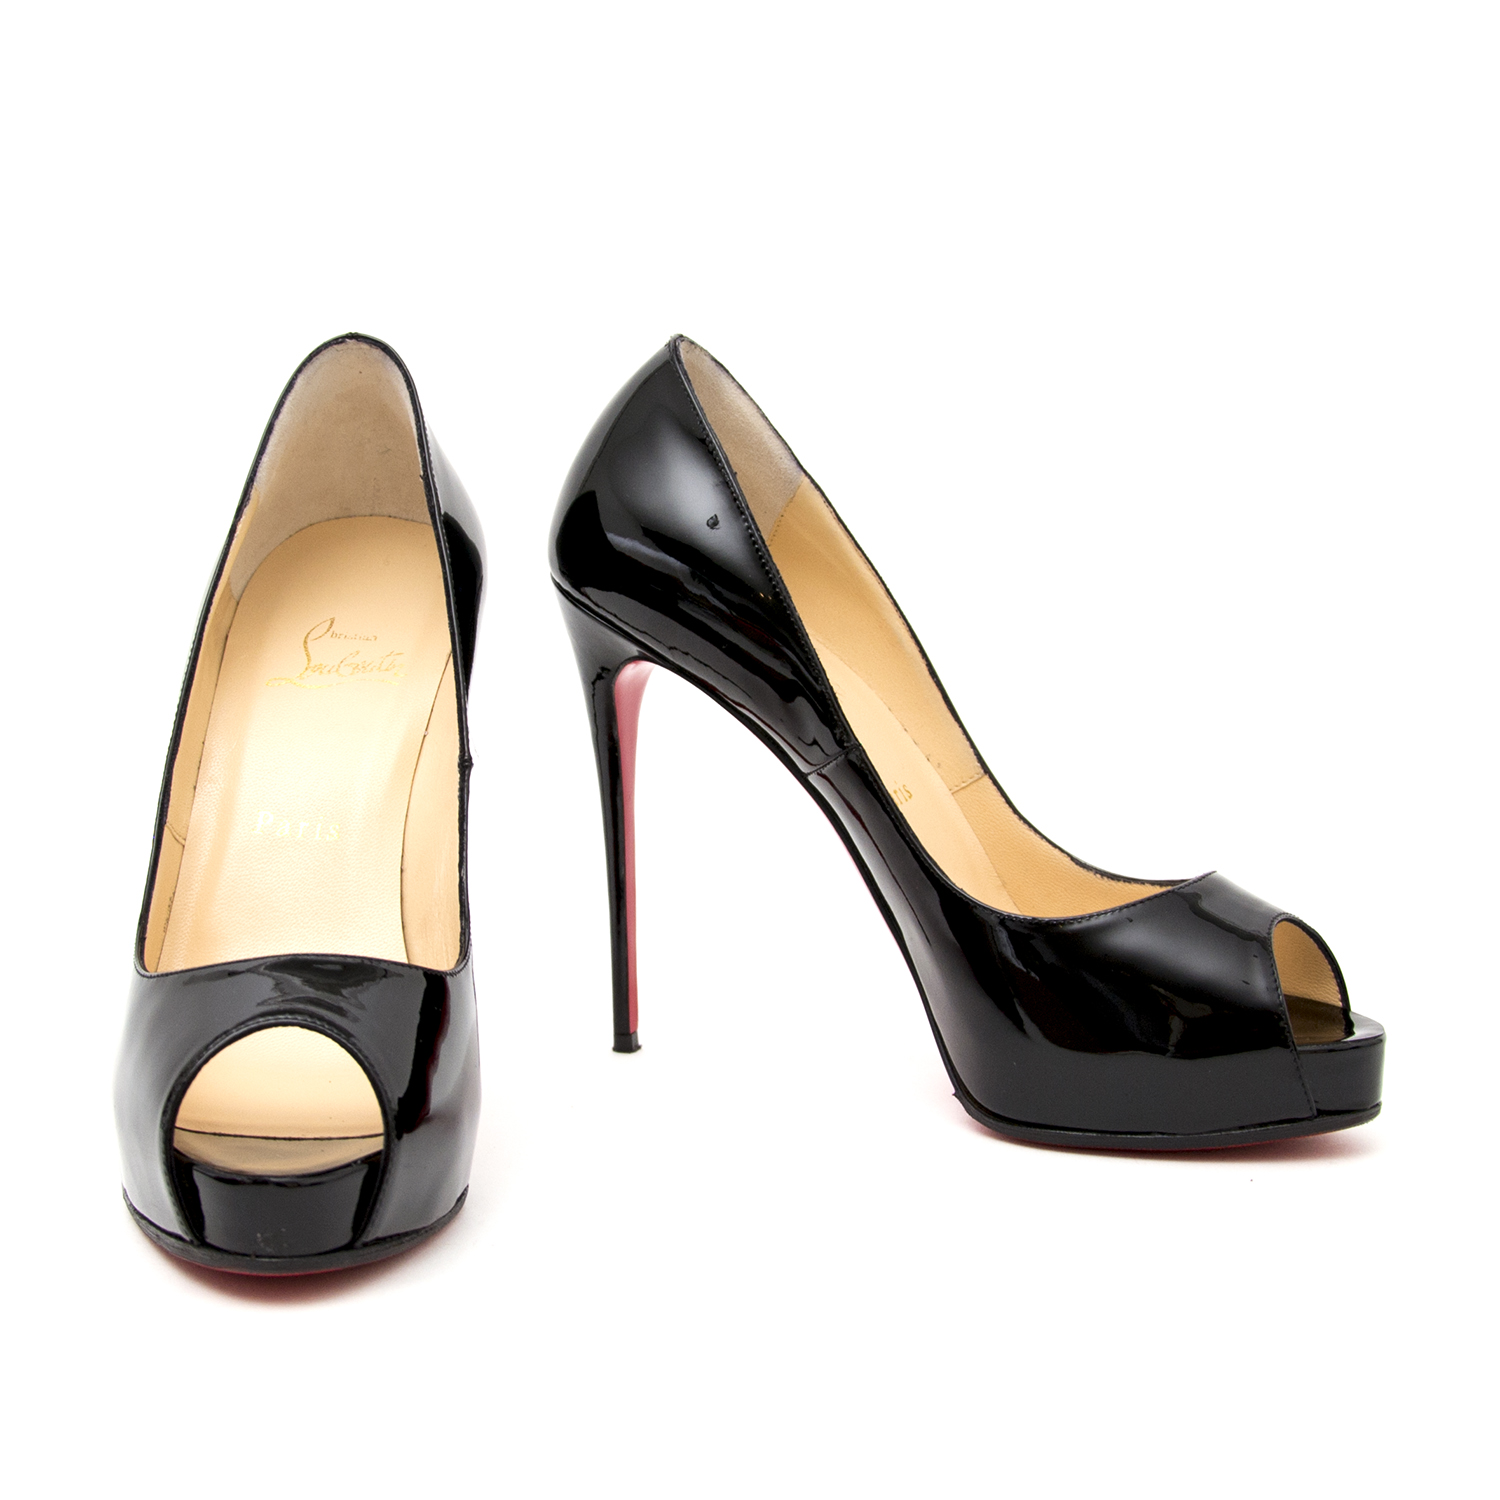 real real designer luxury shoes for the best price Louboutin New Very Prive Patent Black Platform Pumps